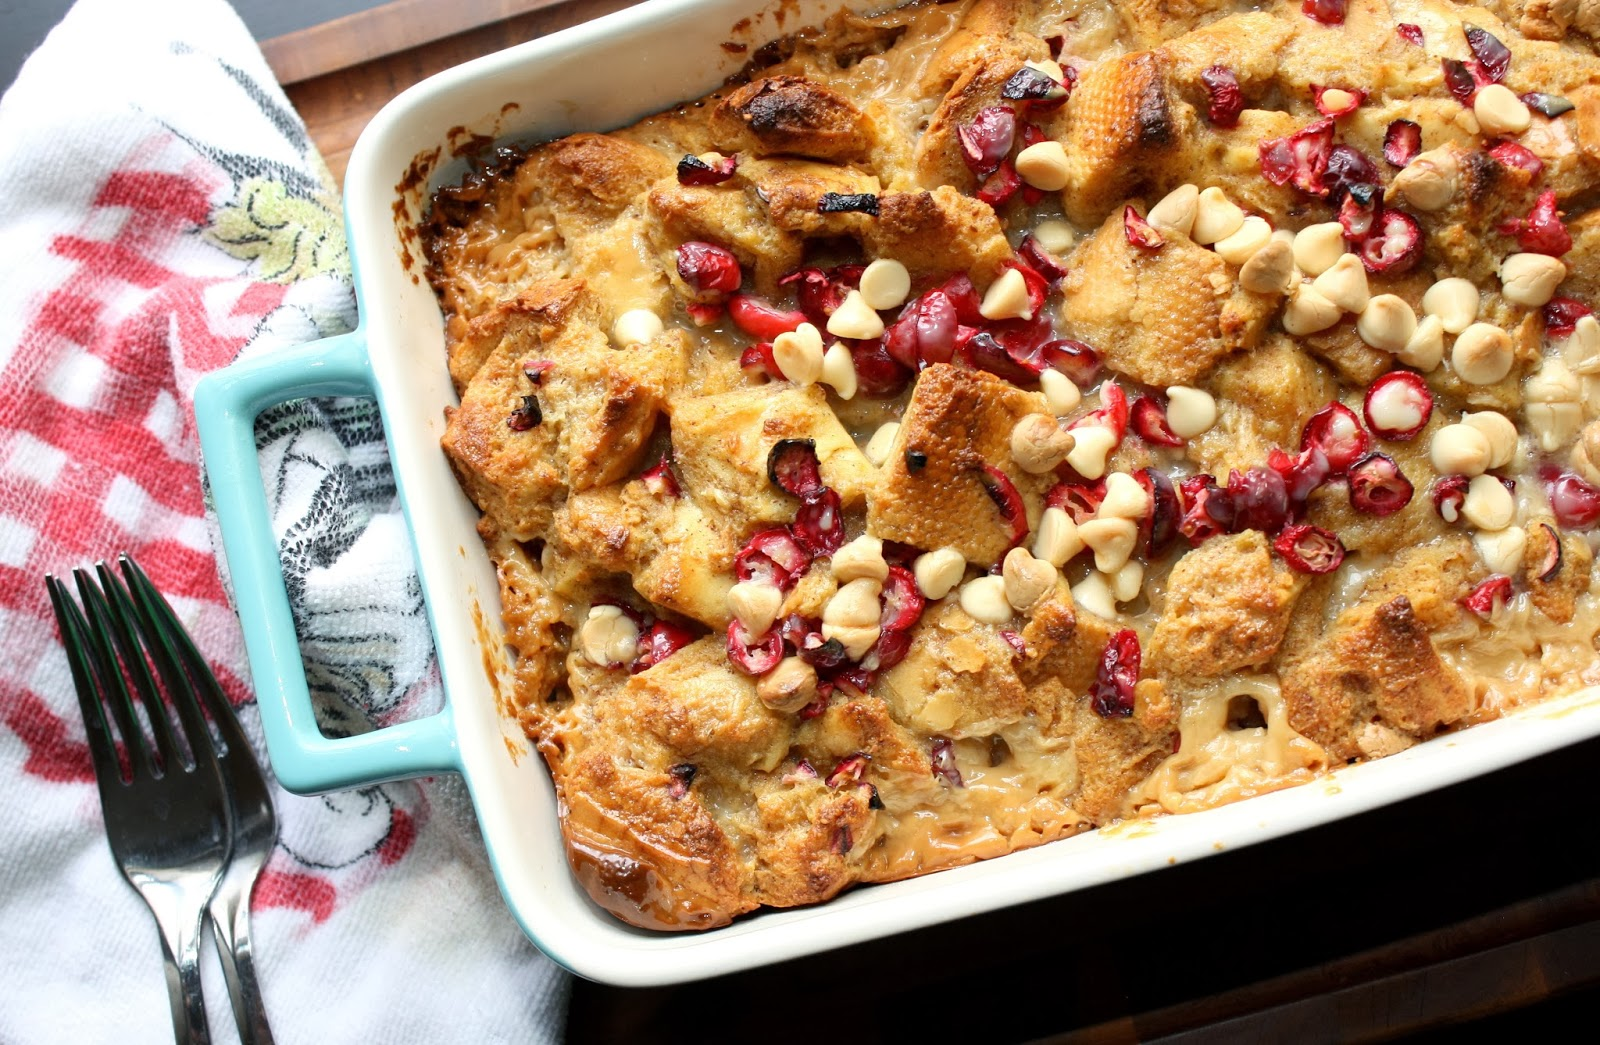 The Bitchin' Kitchin': Baked Eggnog French Toast with Cranberries and...